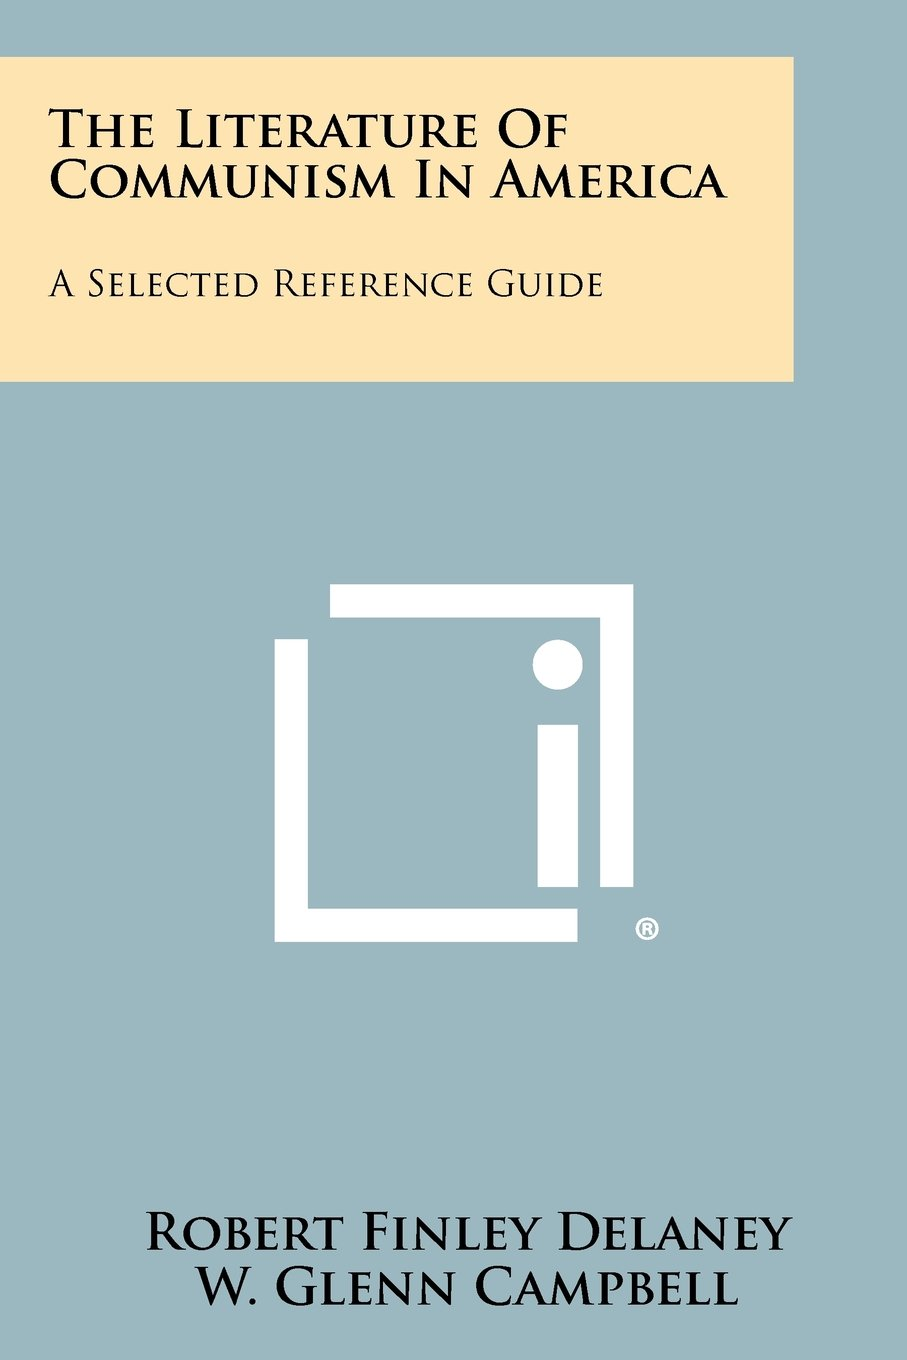 Download The Literature of Communism in America: A Selected Reference Guide PDF